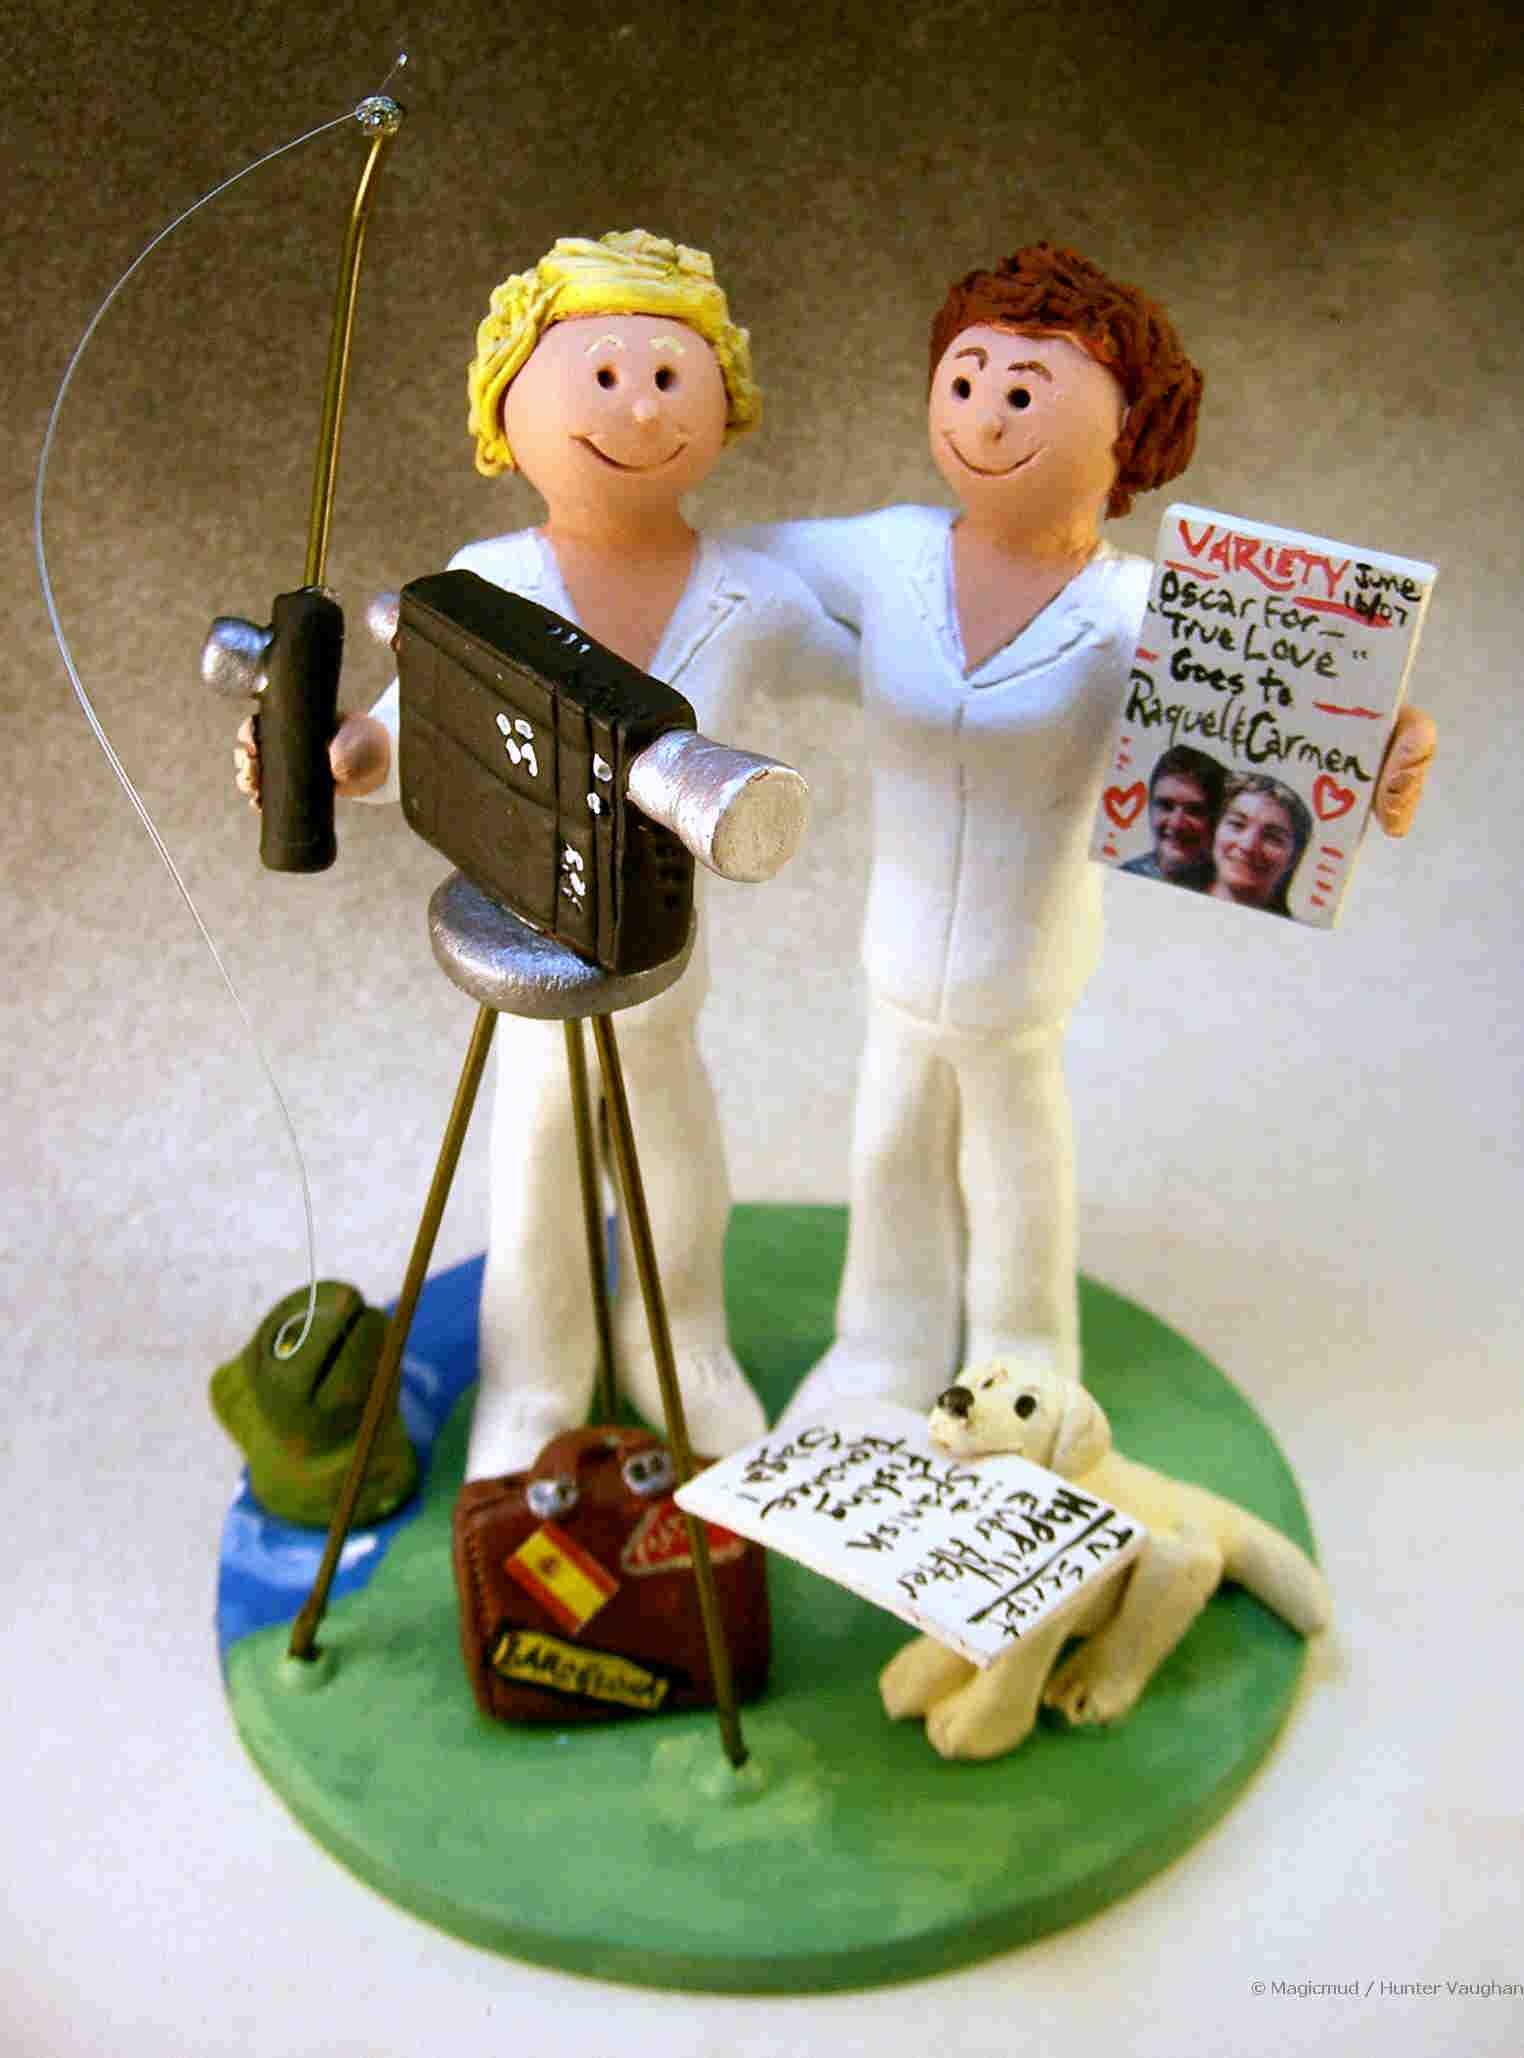 Wedding Cake Topper for a Gay Couple